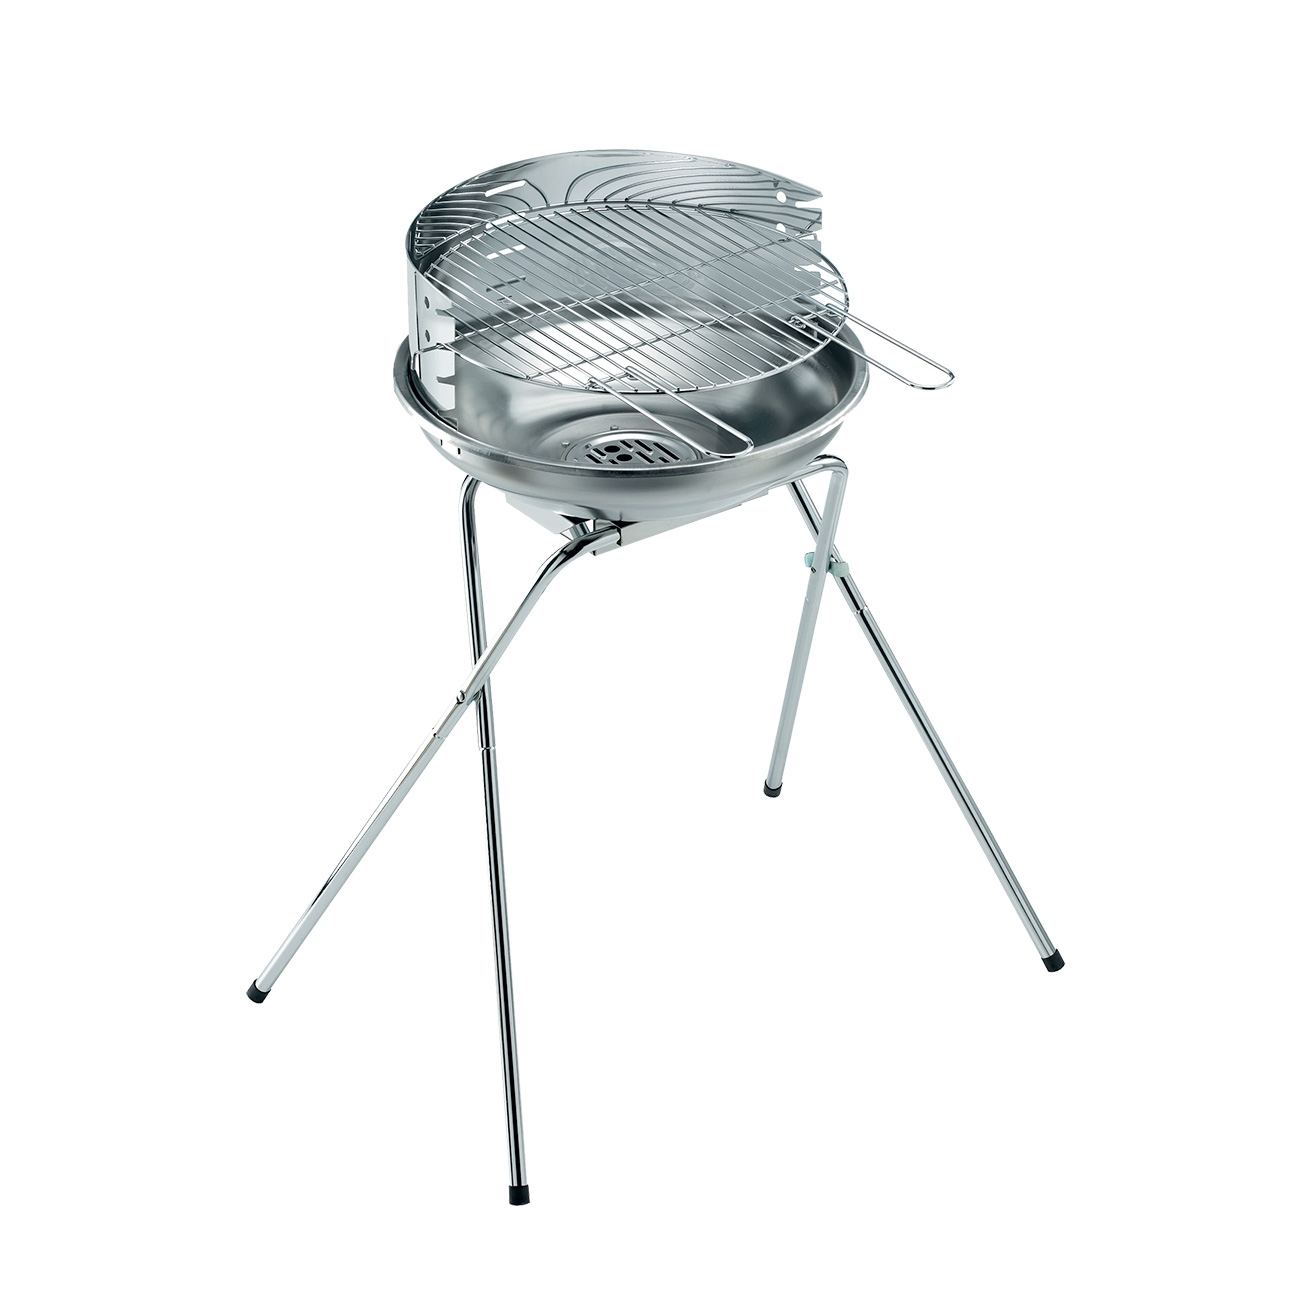 Image of Barbecue a carbonella Ompagrill 480 pro inox 70480